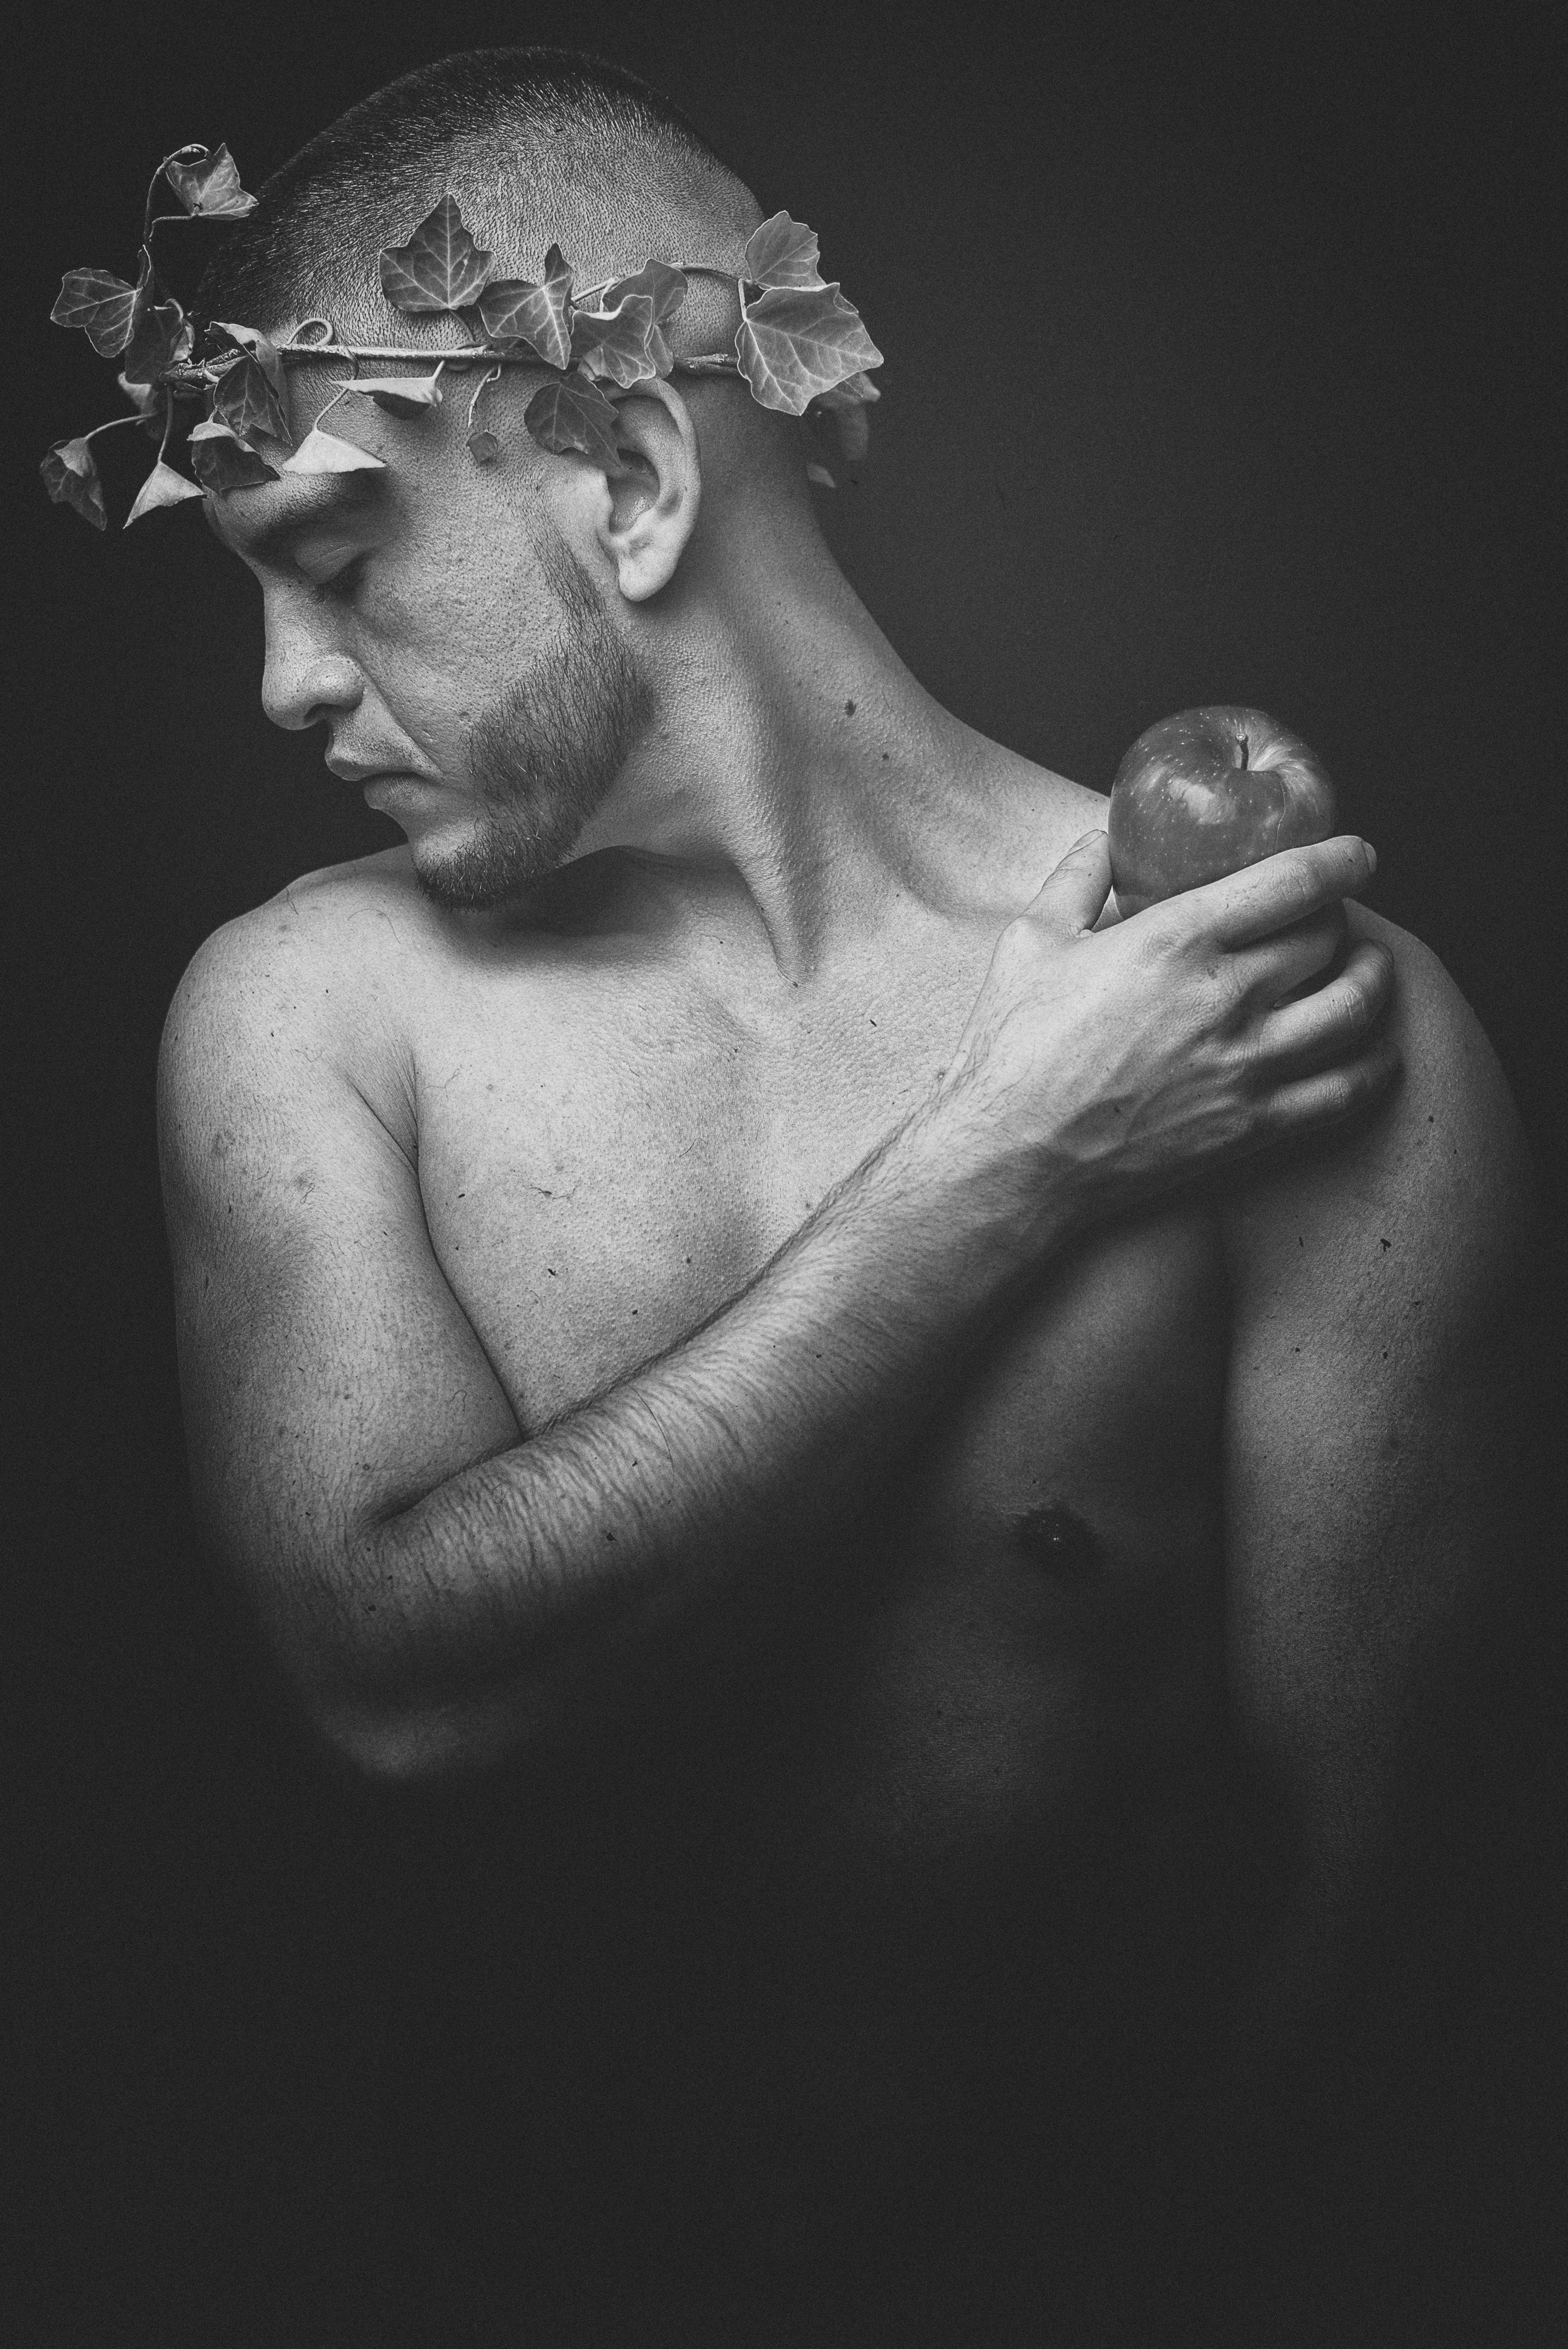 grayscale photo of man holding apple fruit